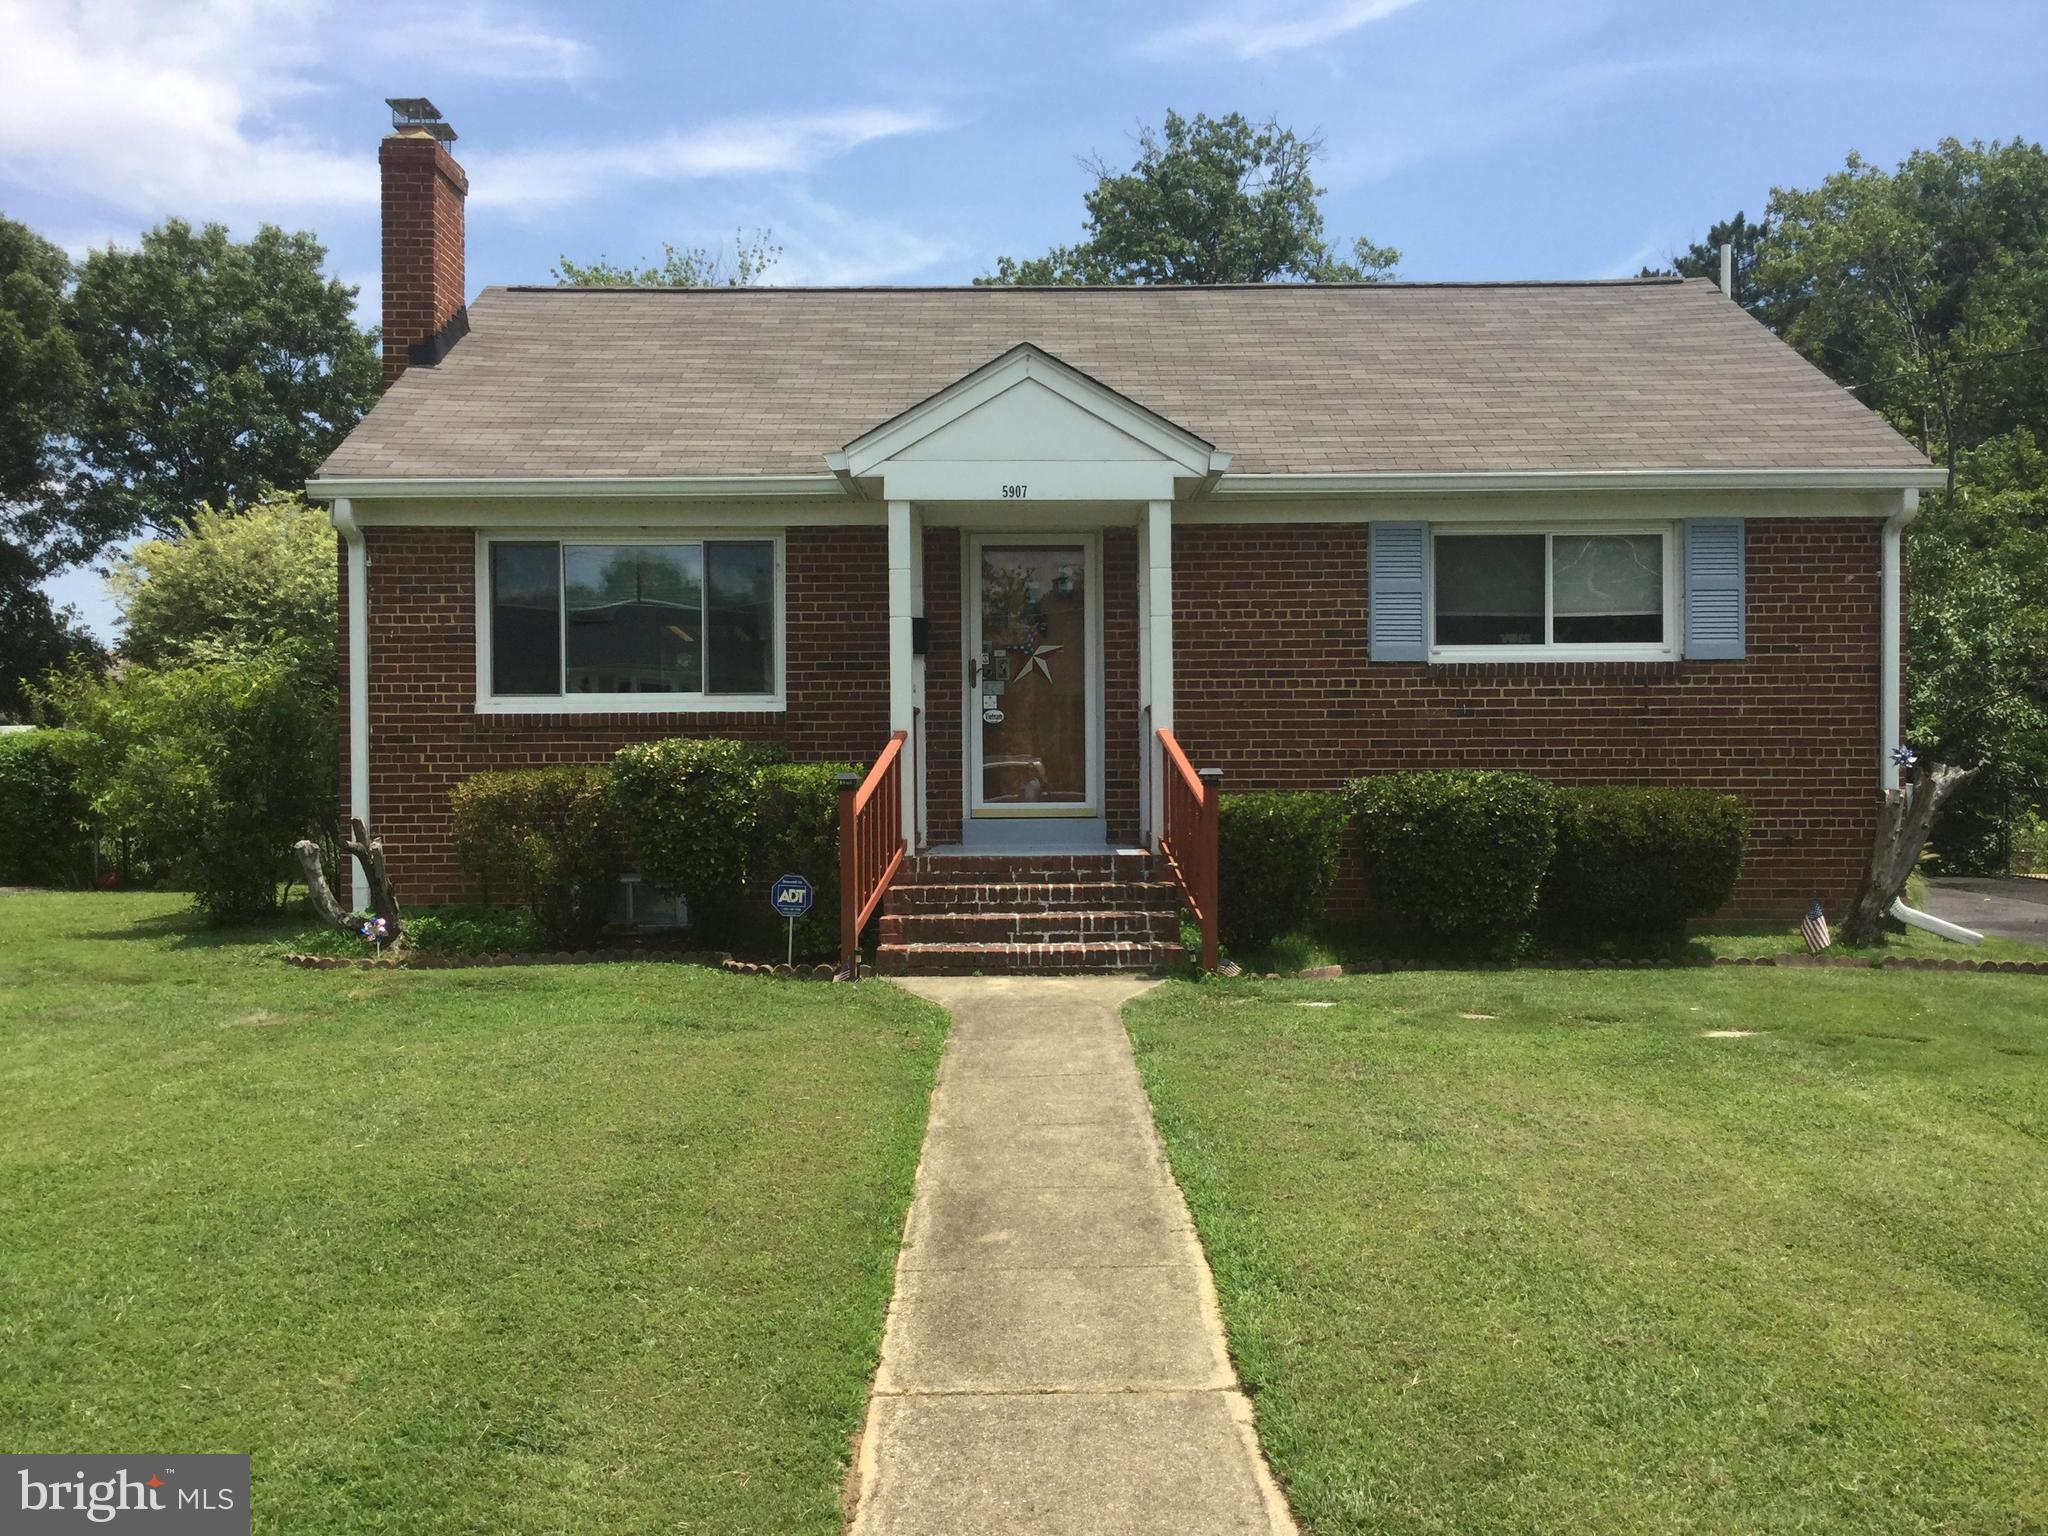 3 bedroom 2 bath rambler in Springfield. Well maintained wood floors throughout main floor. Living room light and bright with fireplace. Relax out on the sun room. Full basement provides living area, bedroom and bath room. Large fenced in yard perfect for entertaining in the warmer months. Close to restaurants and shopping.